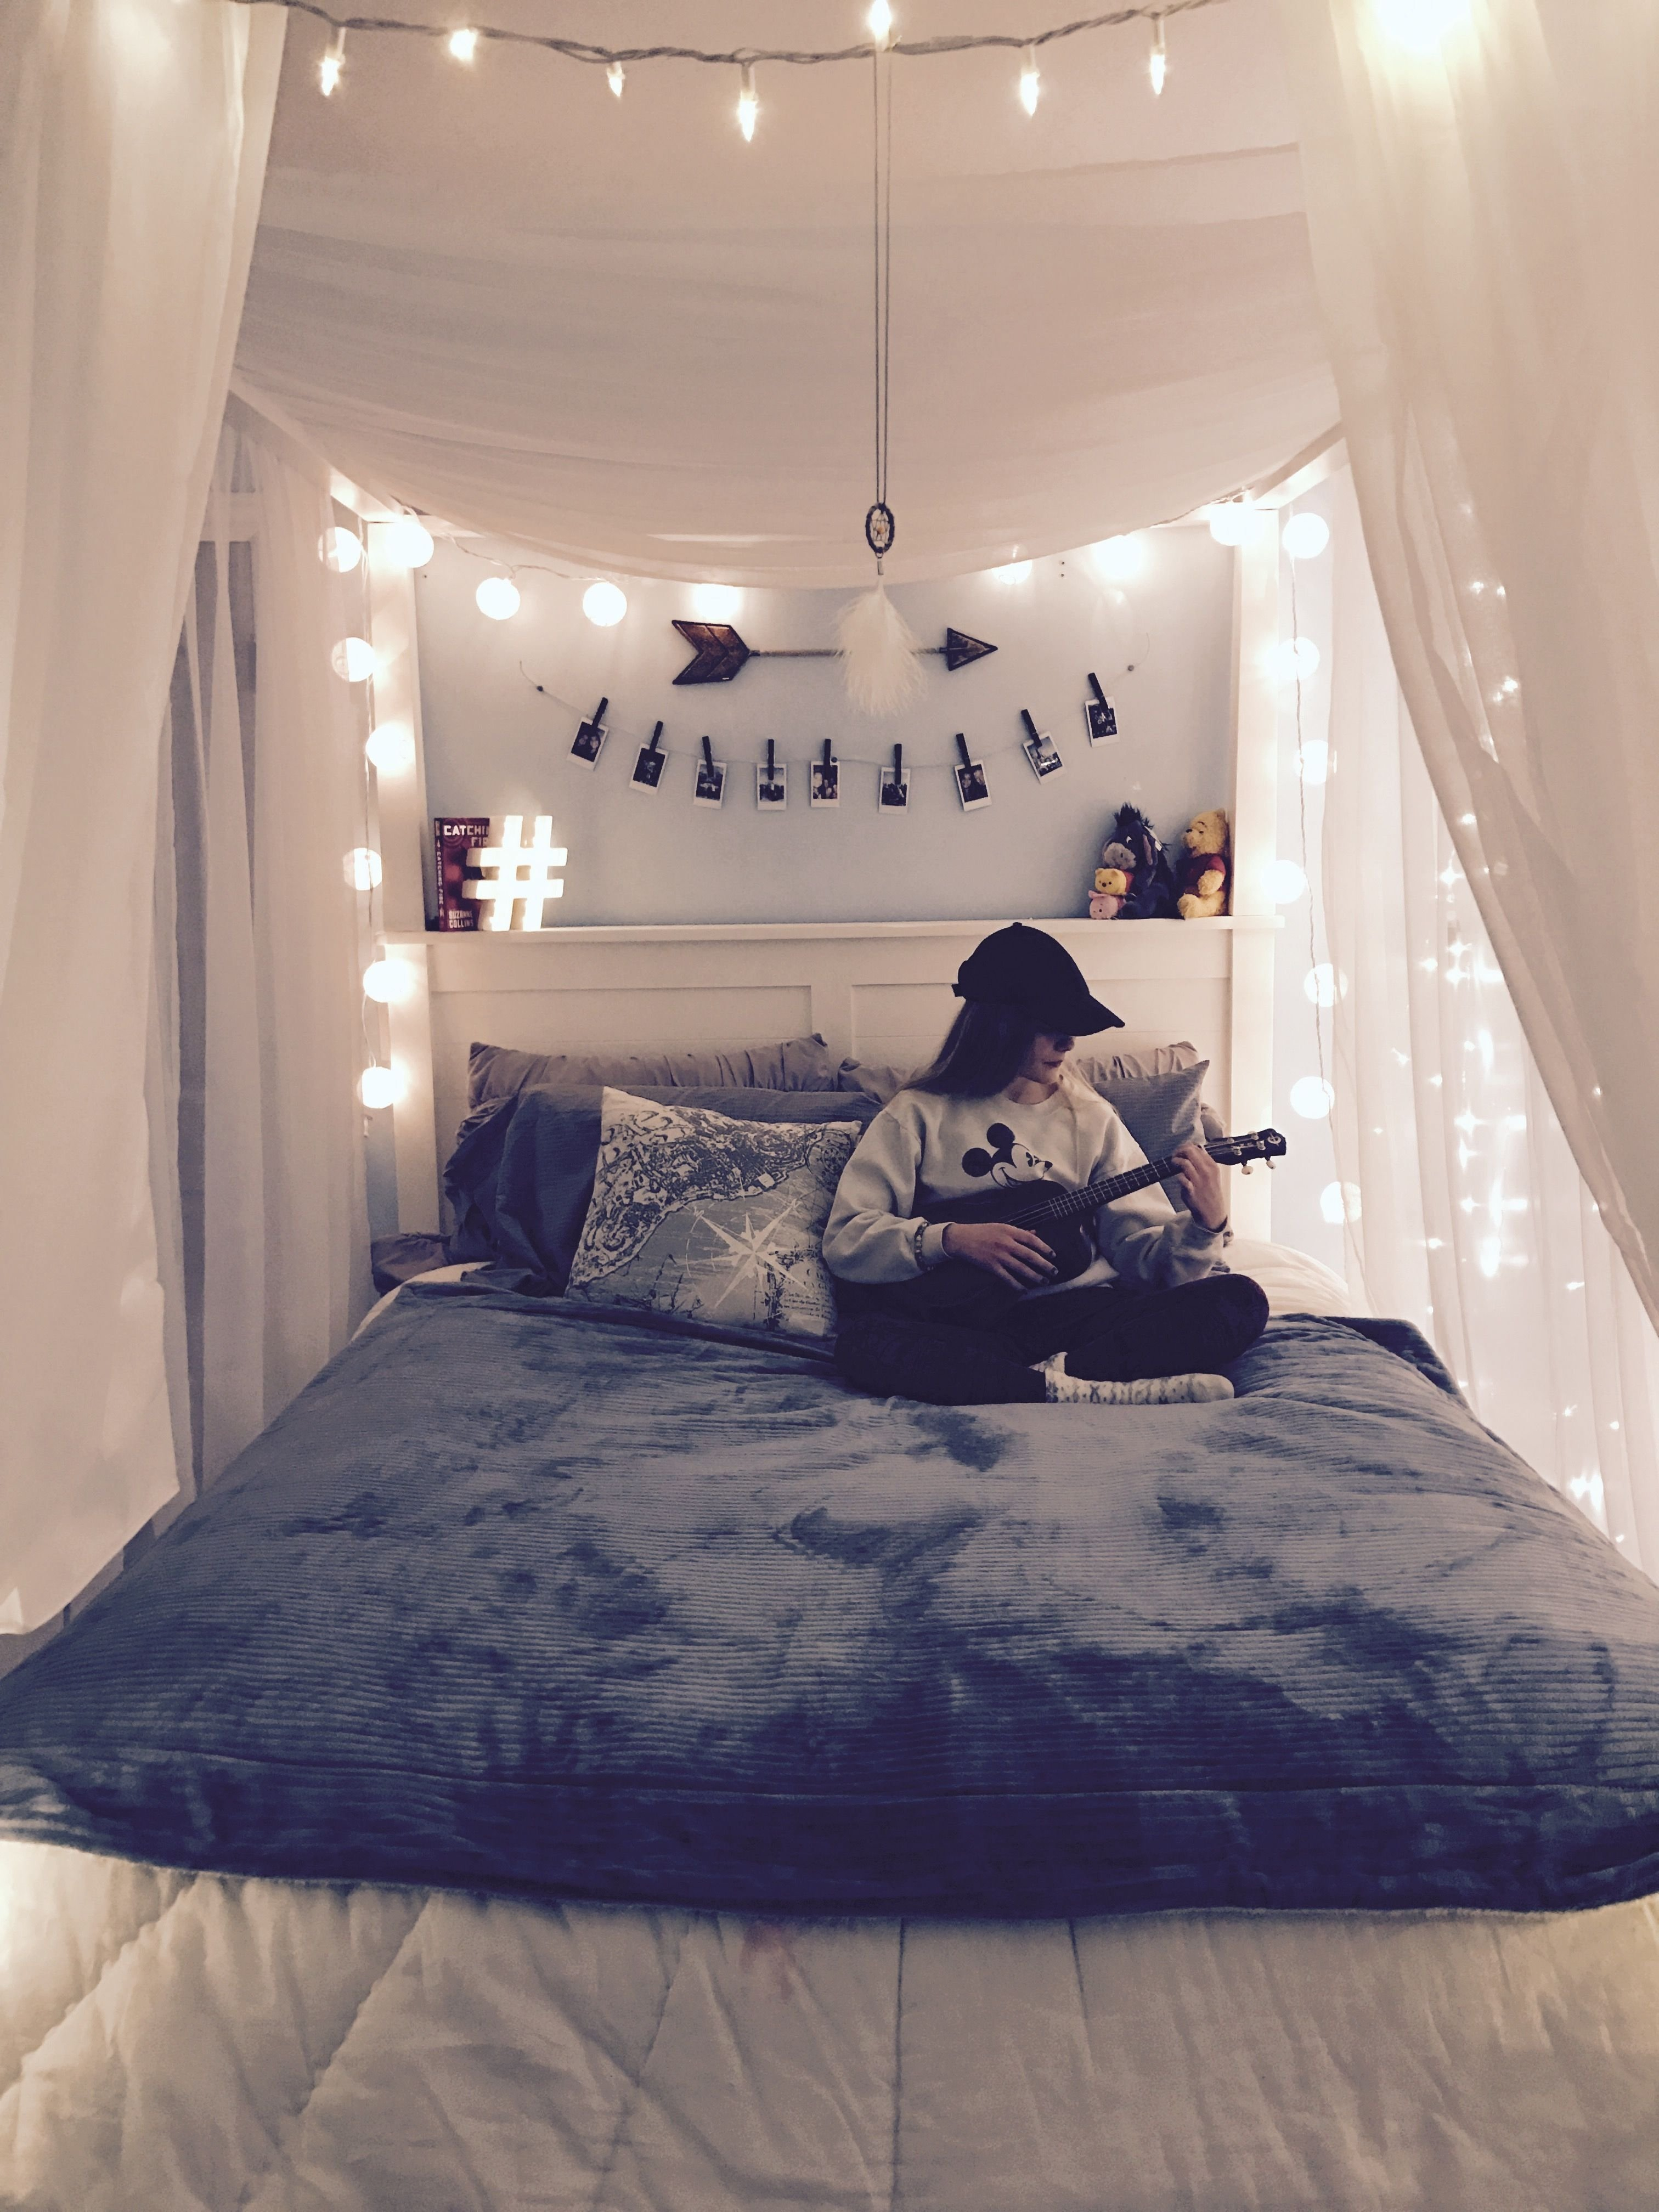 10 Stylish Cool Room Ideas For Teenage Girls teen bedroom makeover ideas chambres deco chambre et deco chambre 2020